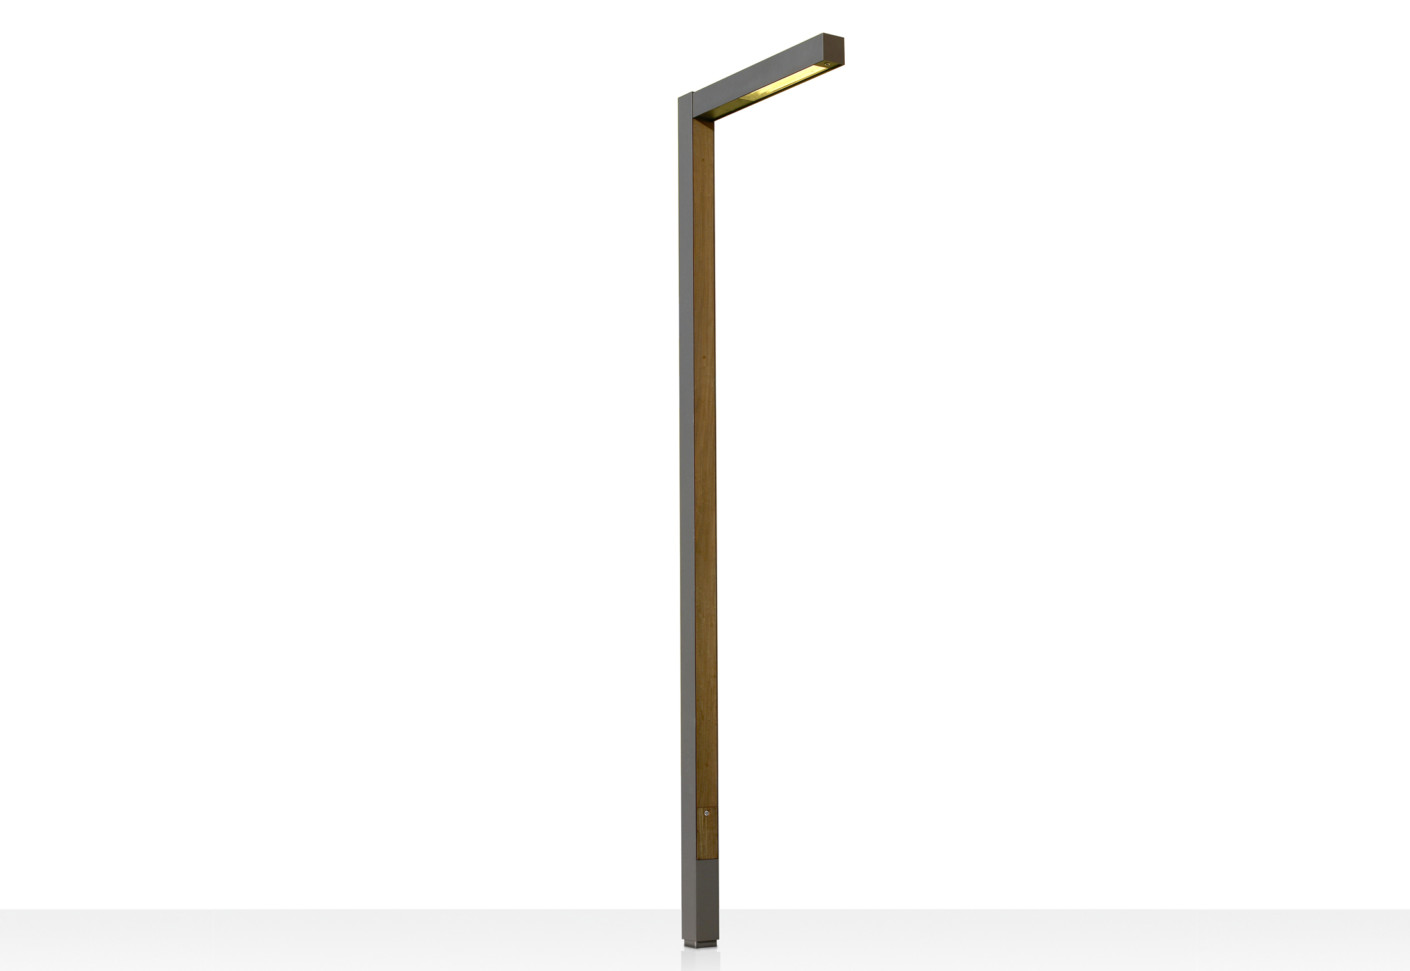 Zenete 400 1 Lamp post 2x2G11 80w metal and wood